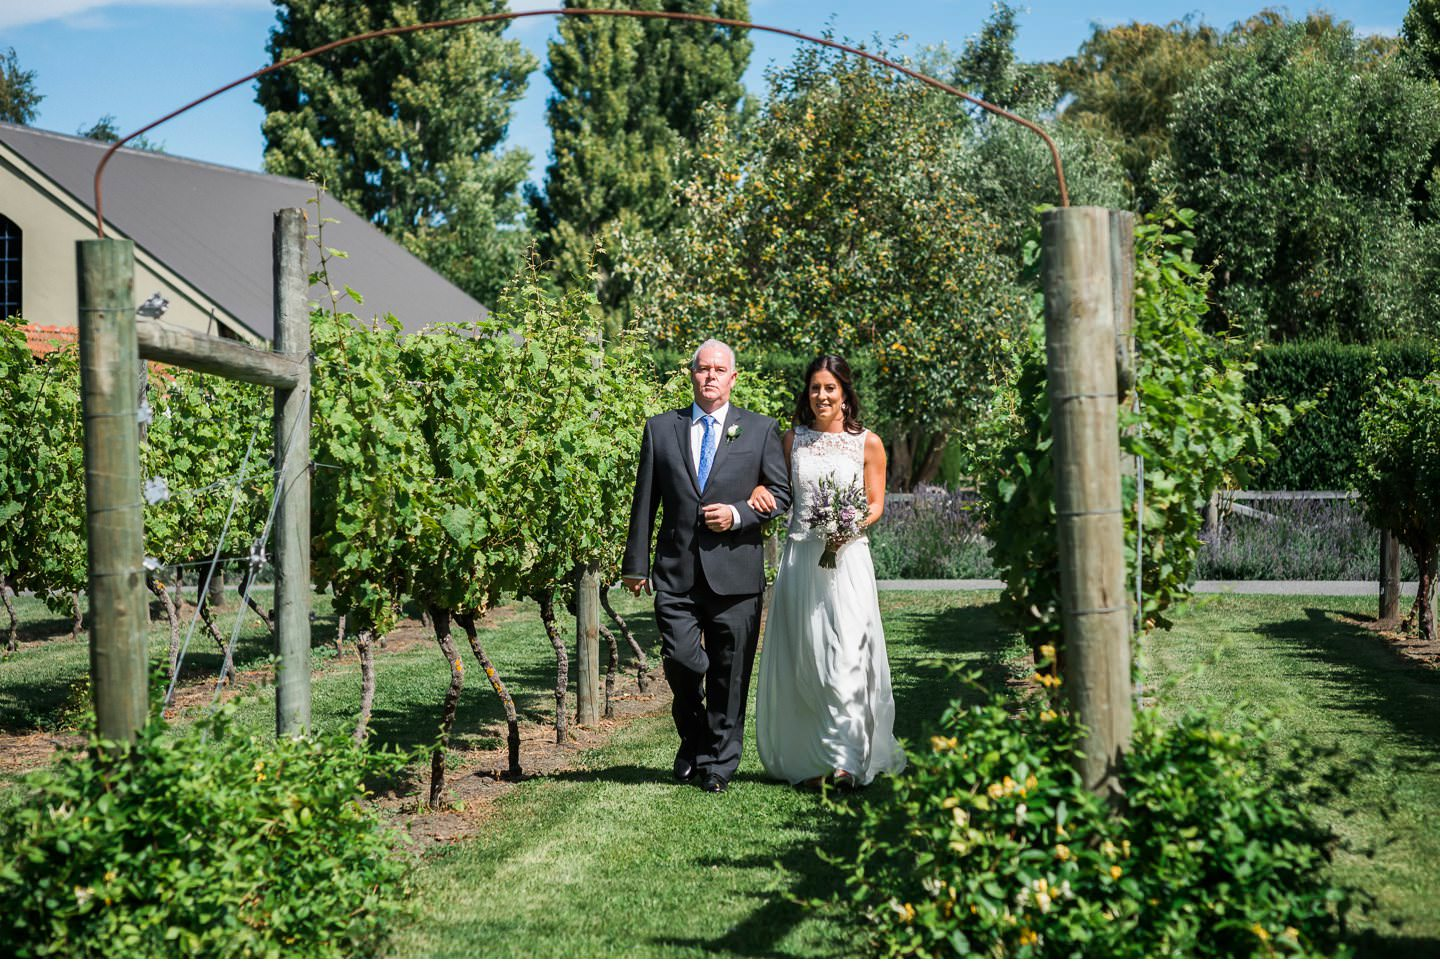 024 - Cossars Wineshed Wedding Photographer.jpg